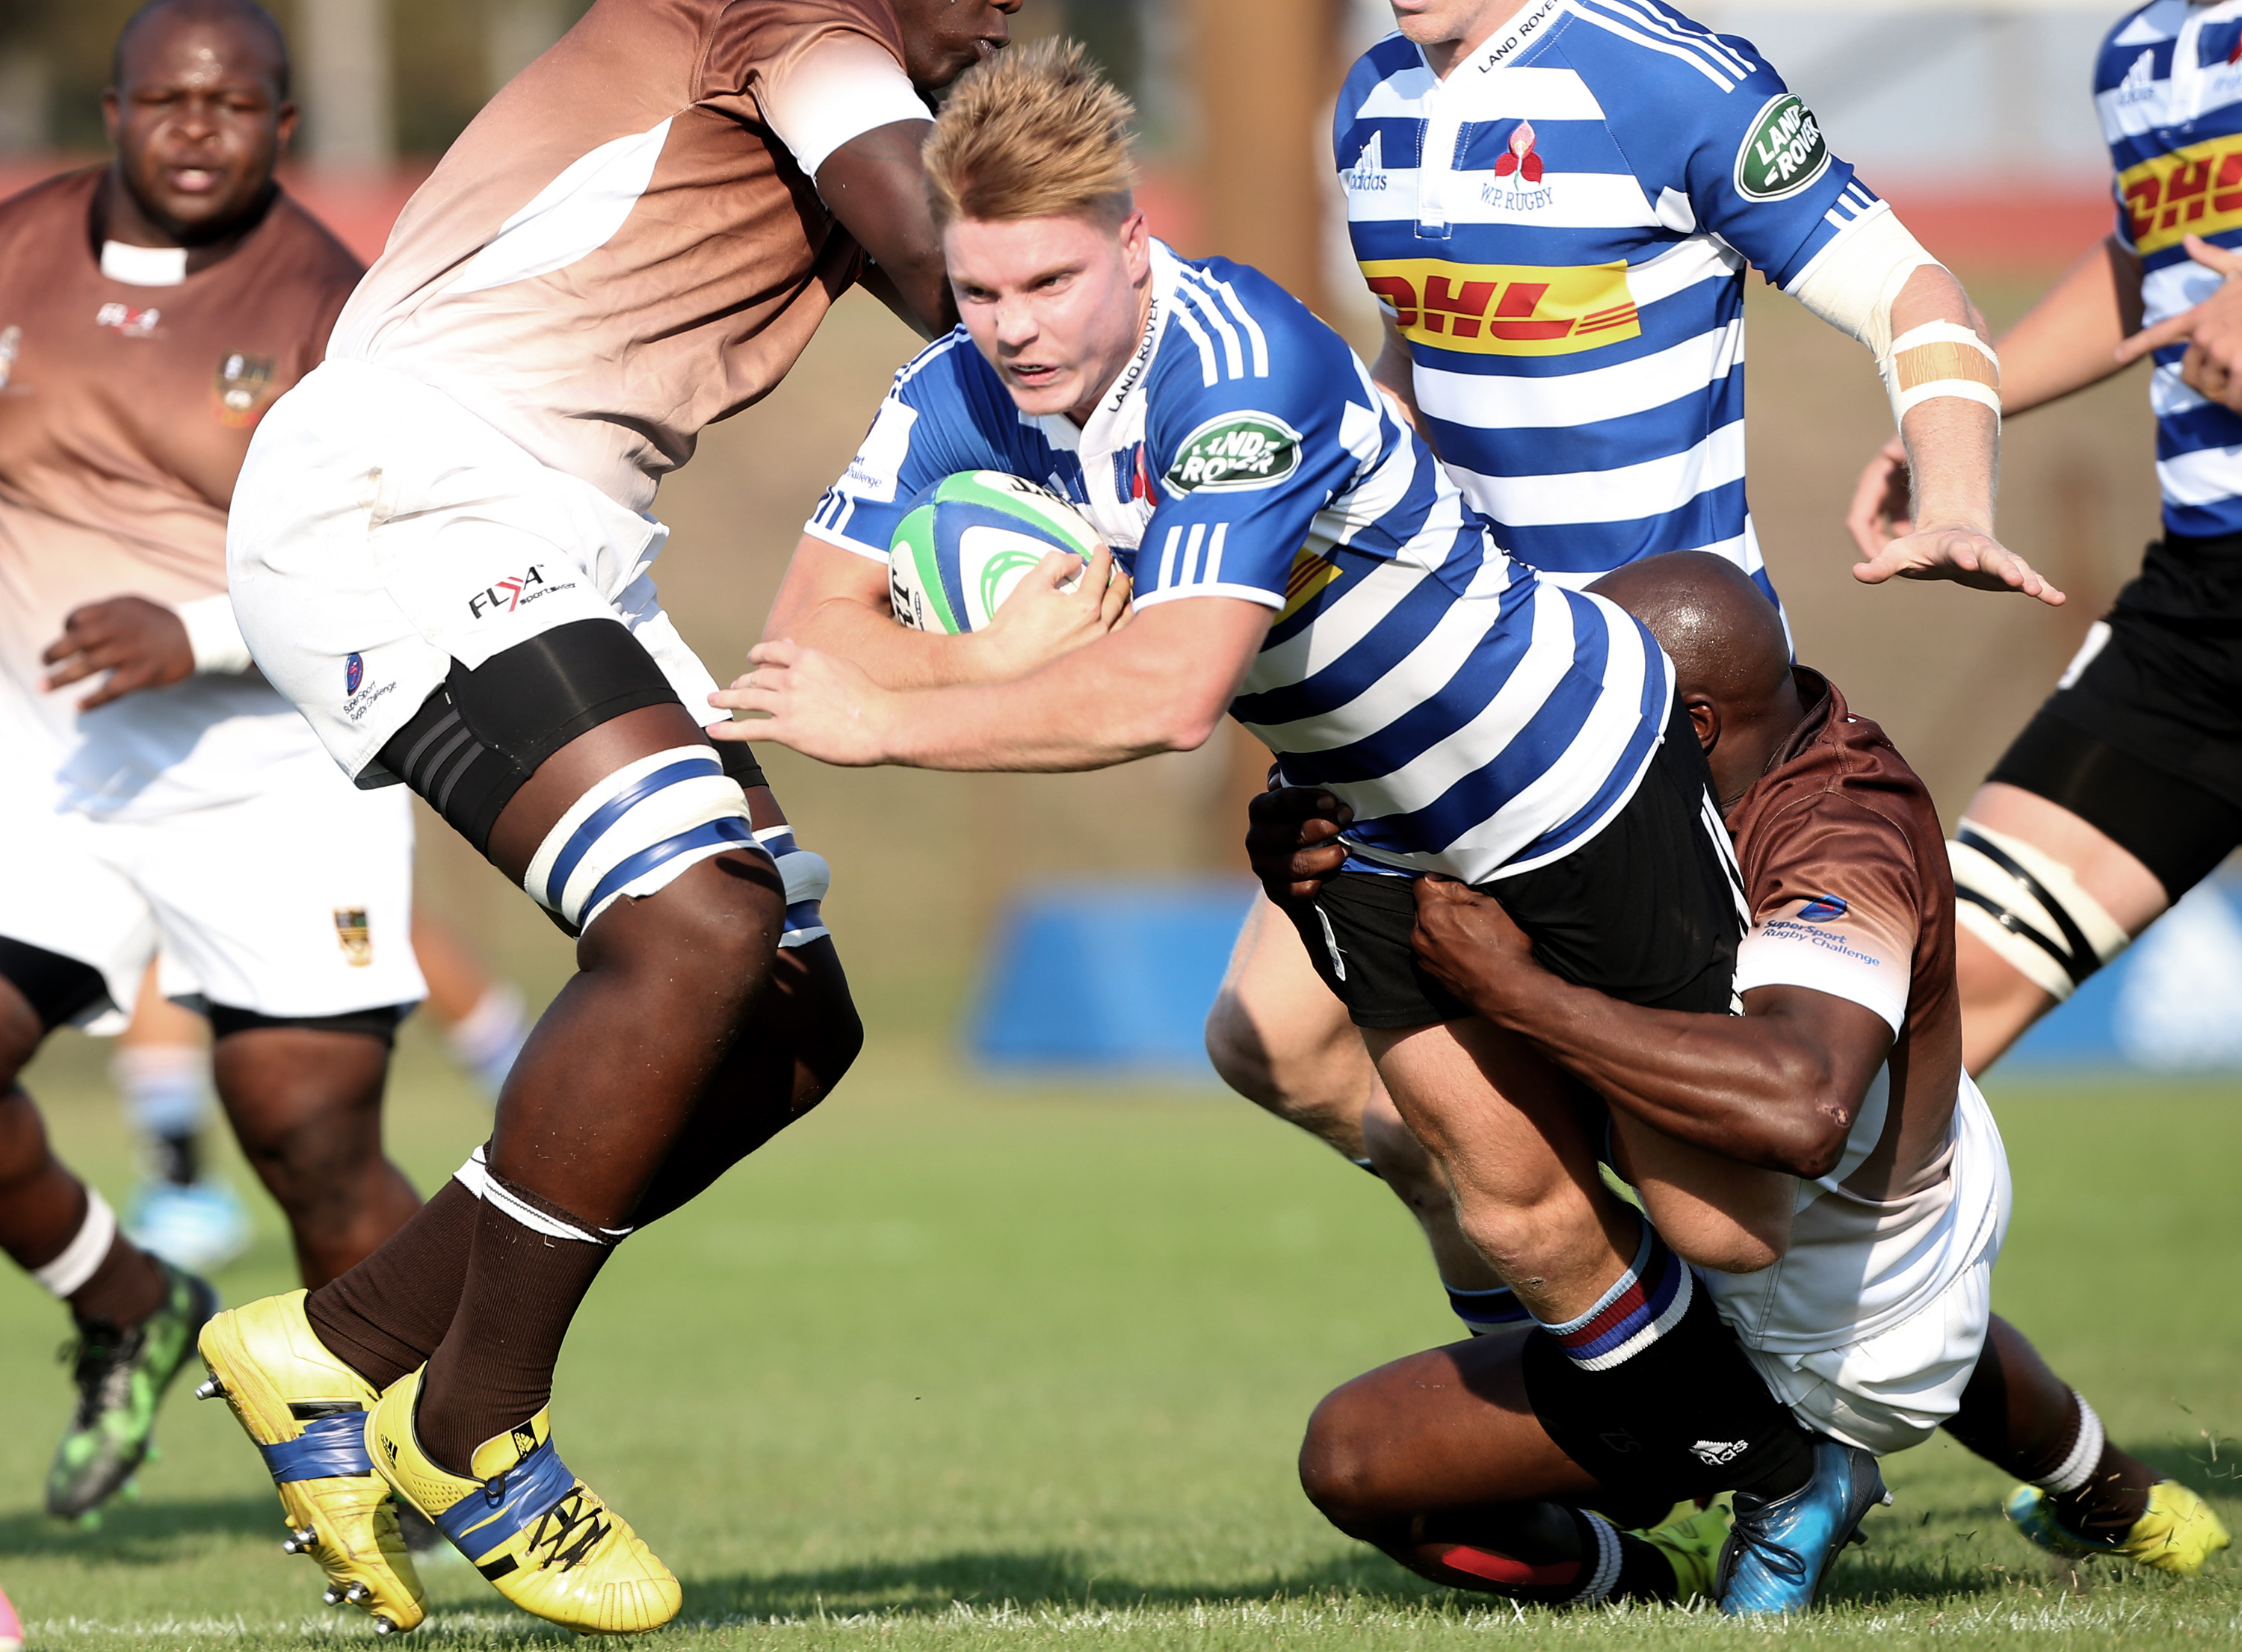 Supersport rugby challenge continues to thrill week two for Divan rossouw